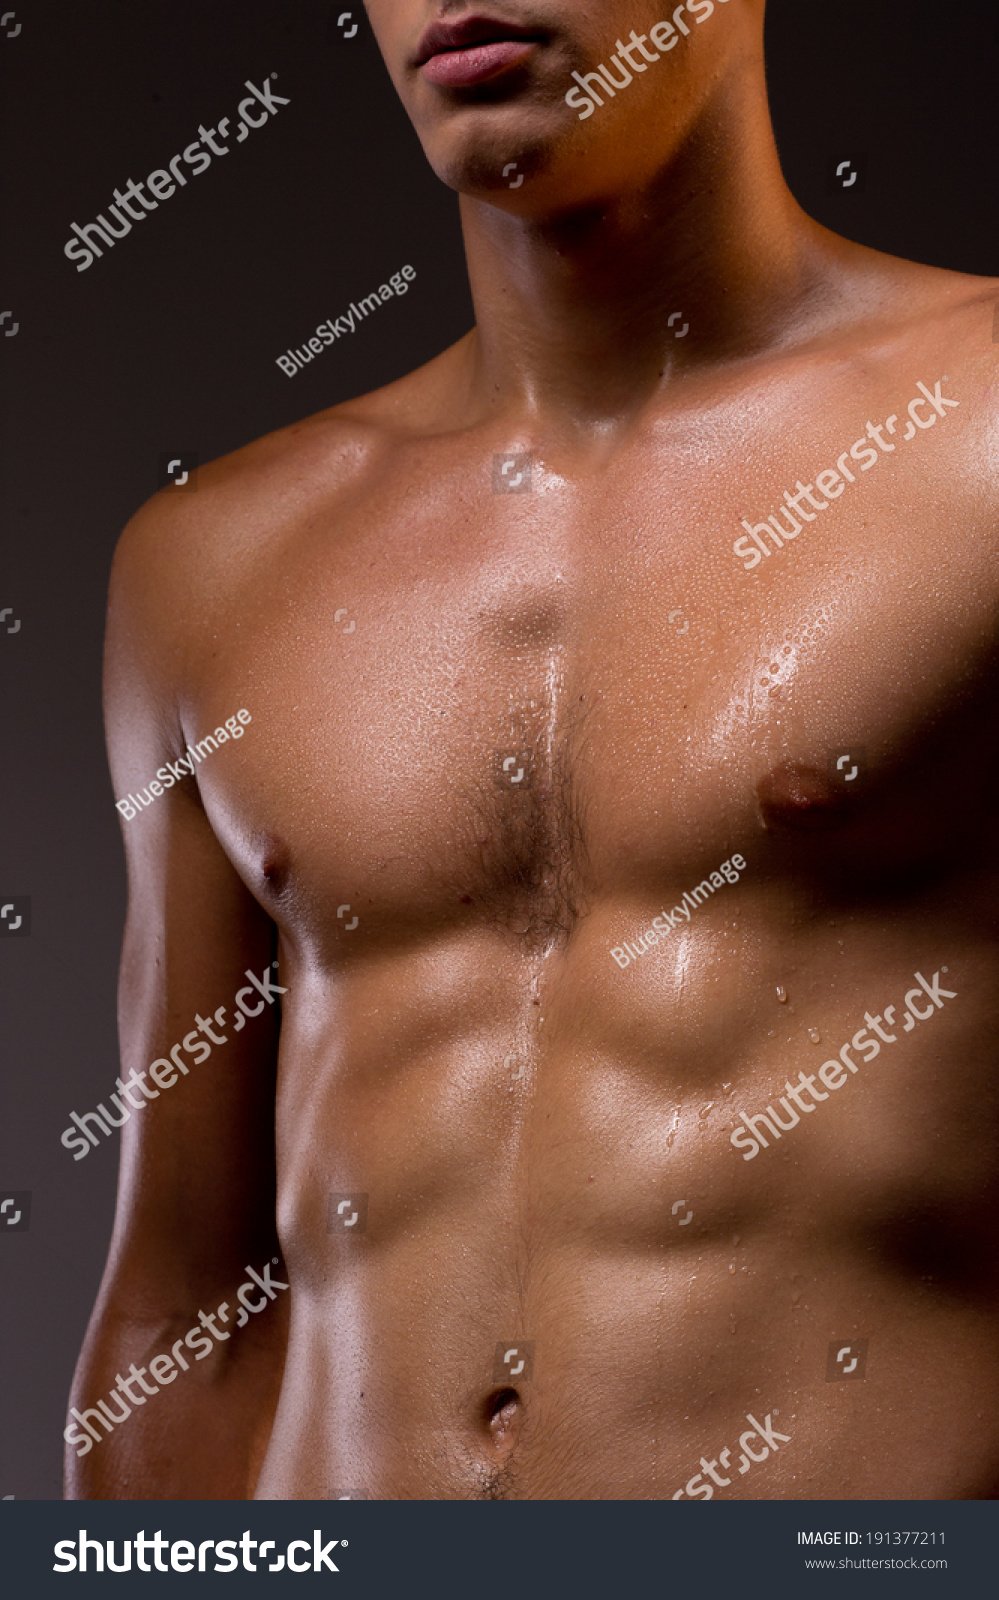 Muscular Torso Naked Muscular Torso Athletic Stock Photo Edit Now